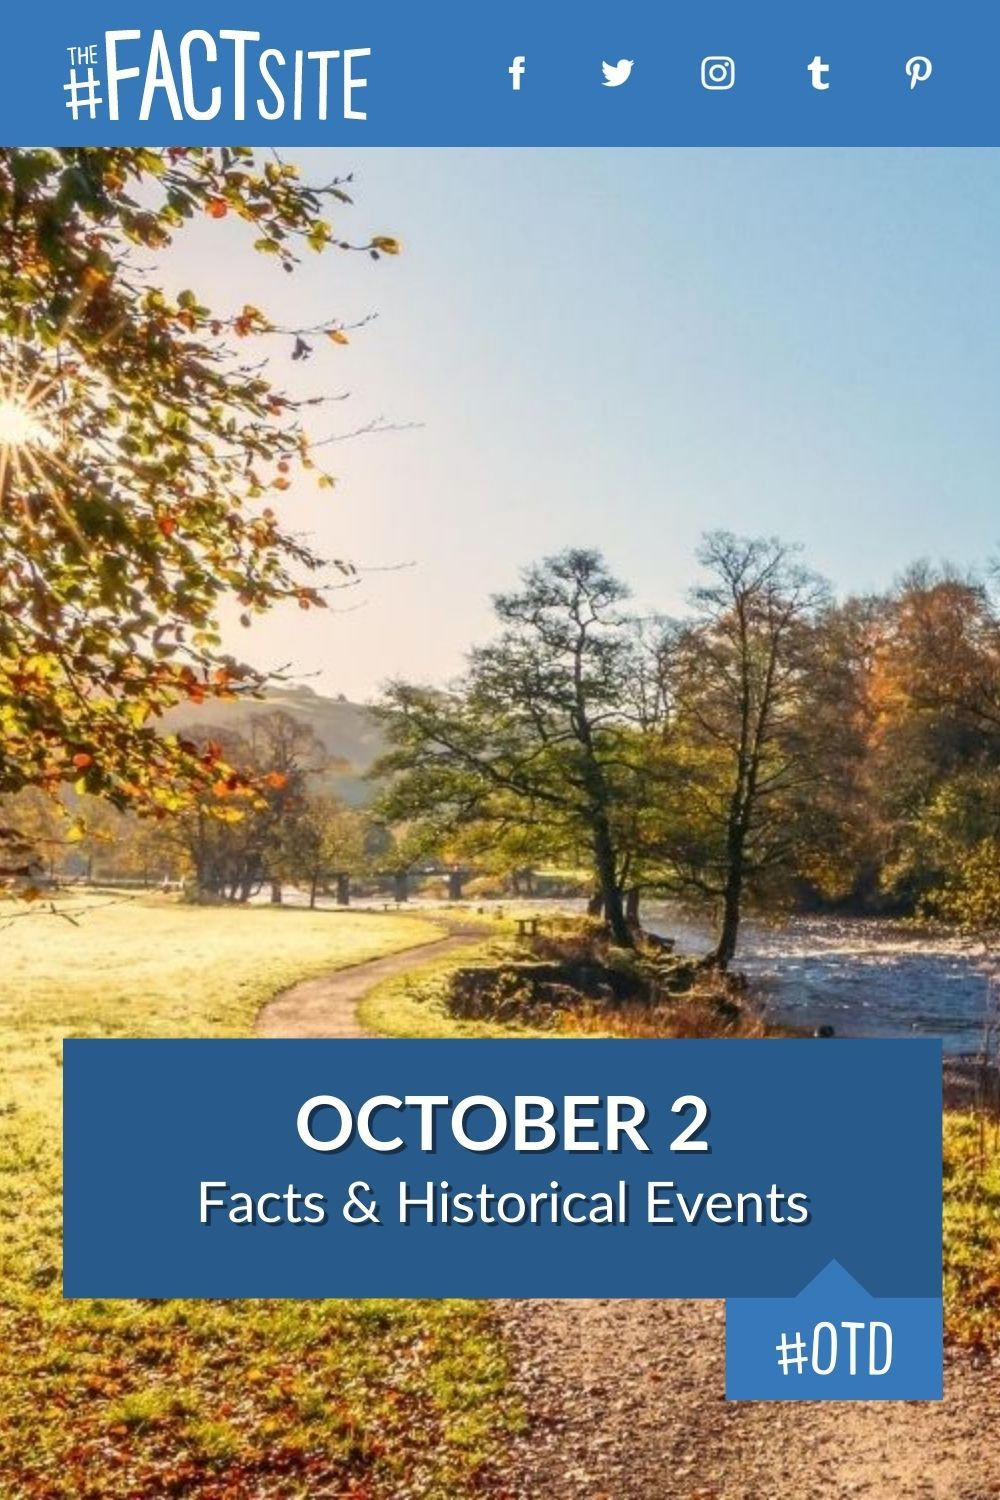 Facts & Historic Events That Happened on October 2